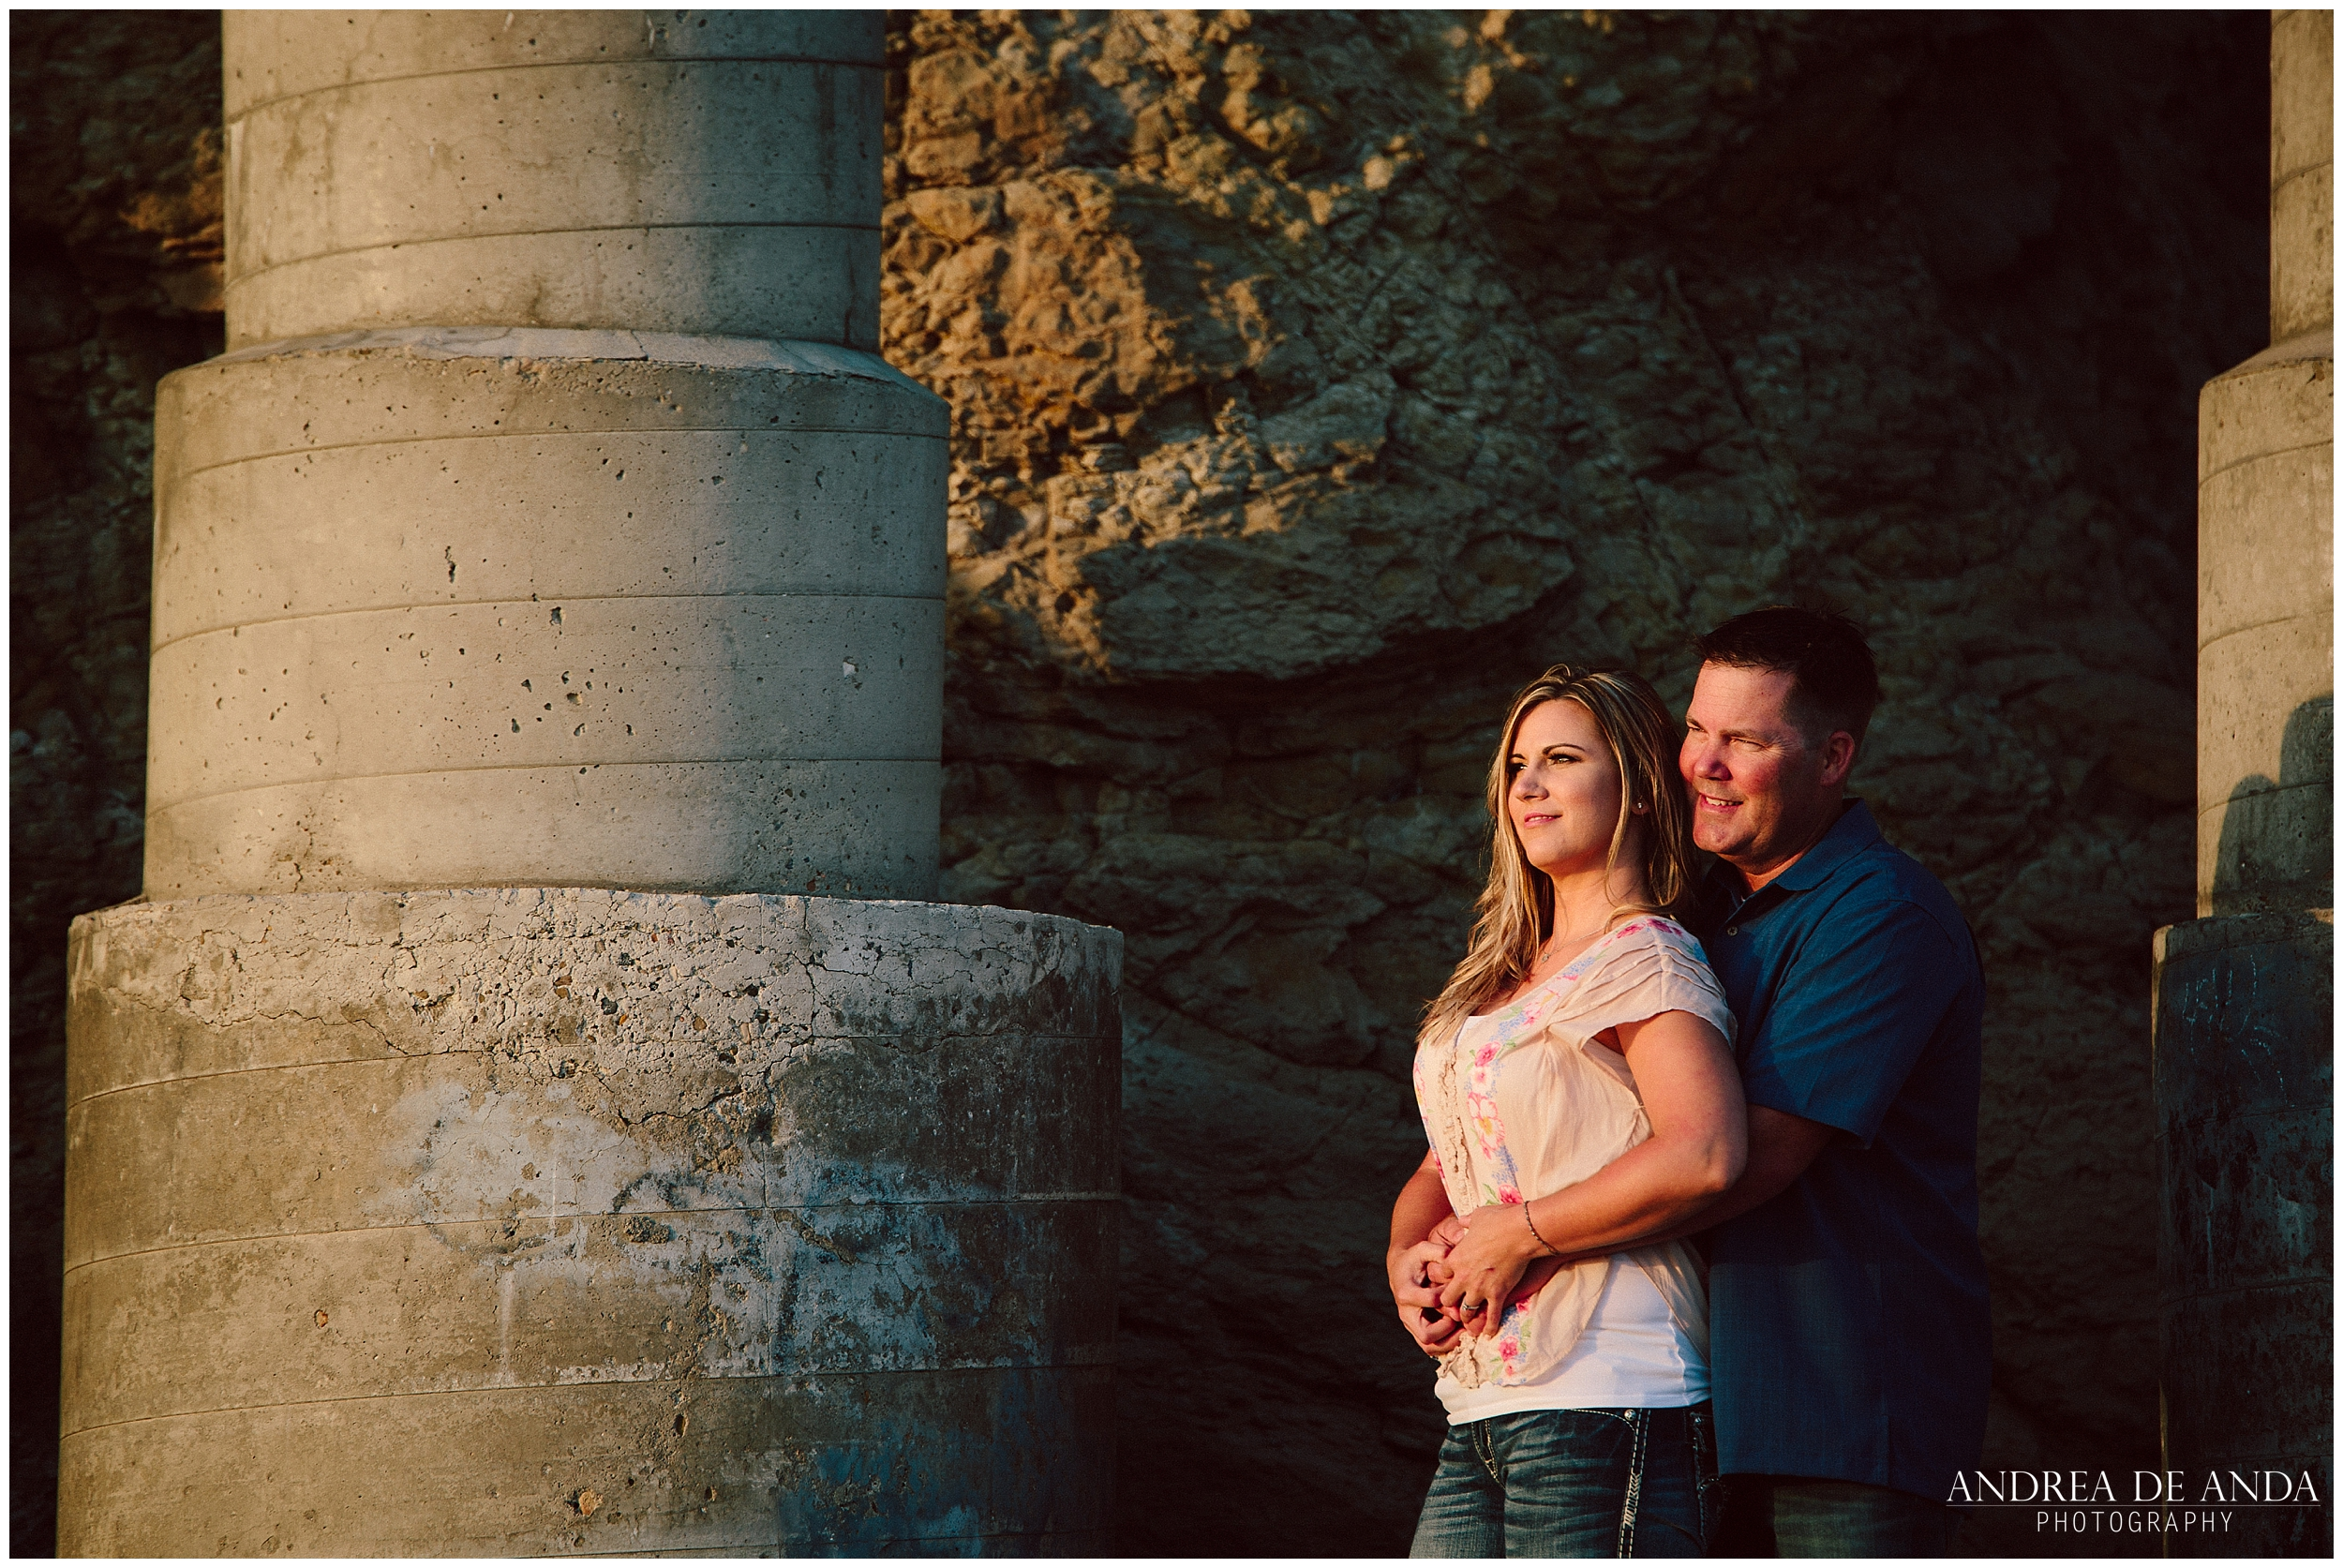 Bay area beach engagement session by Andrea de Anda Photography__0006.jpg